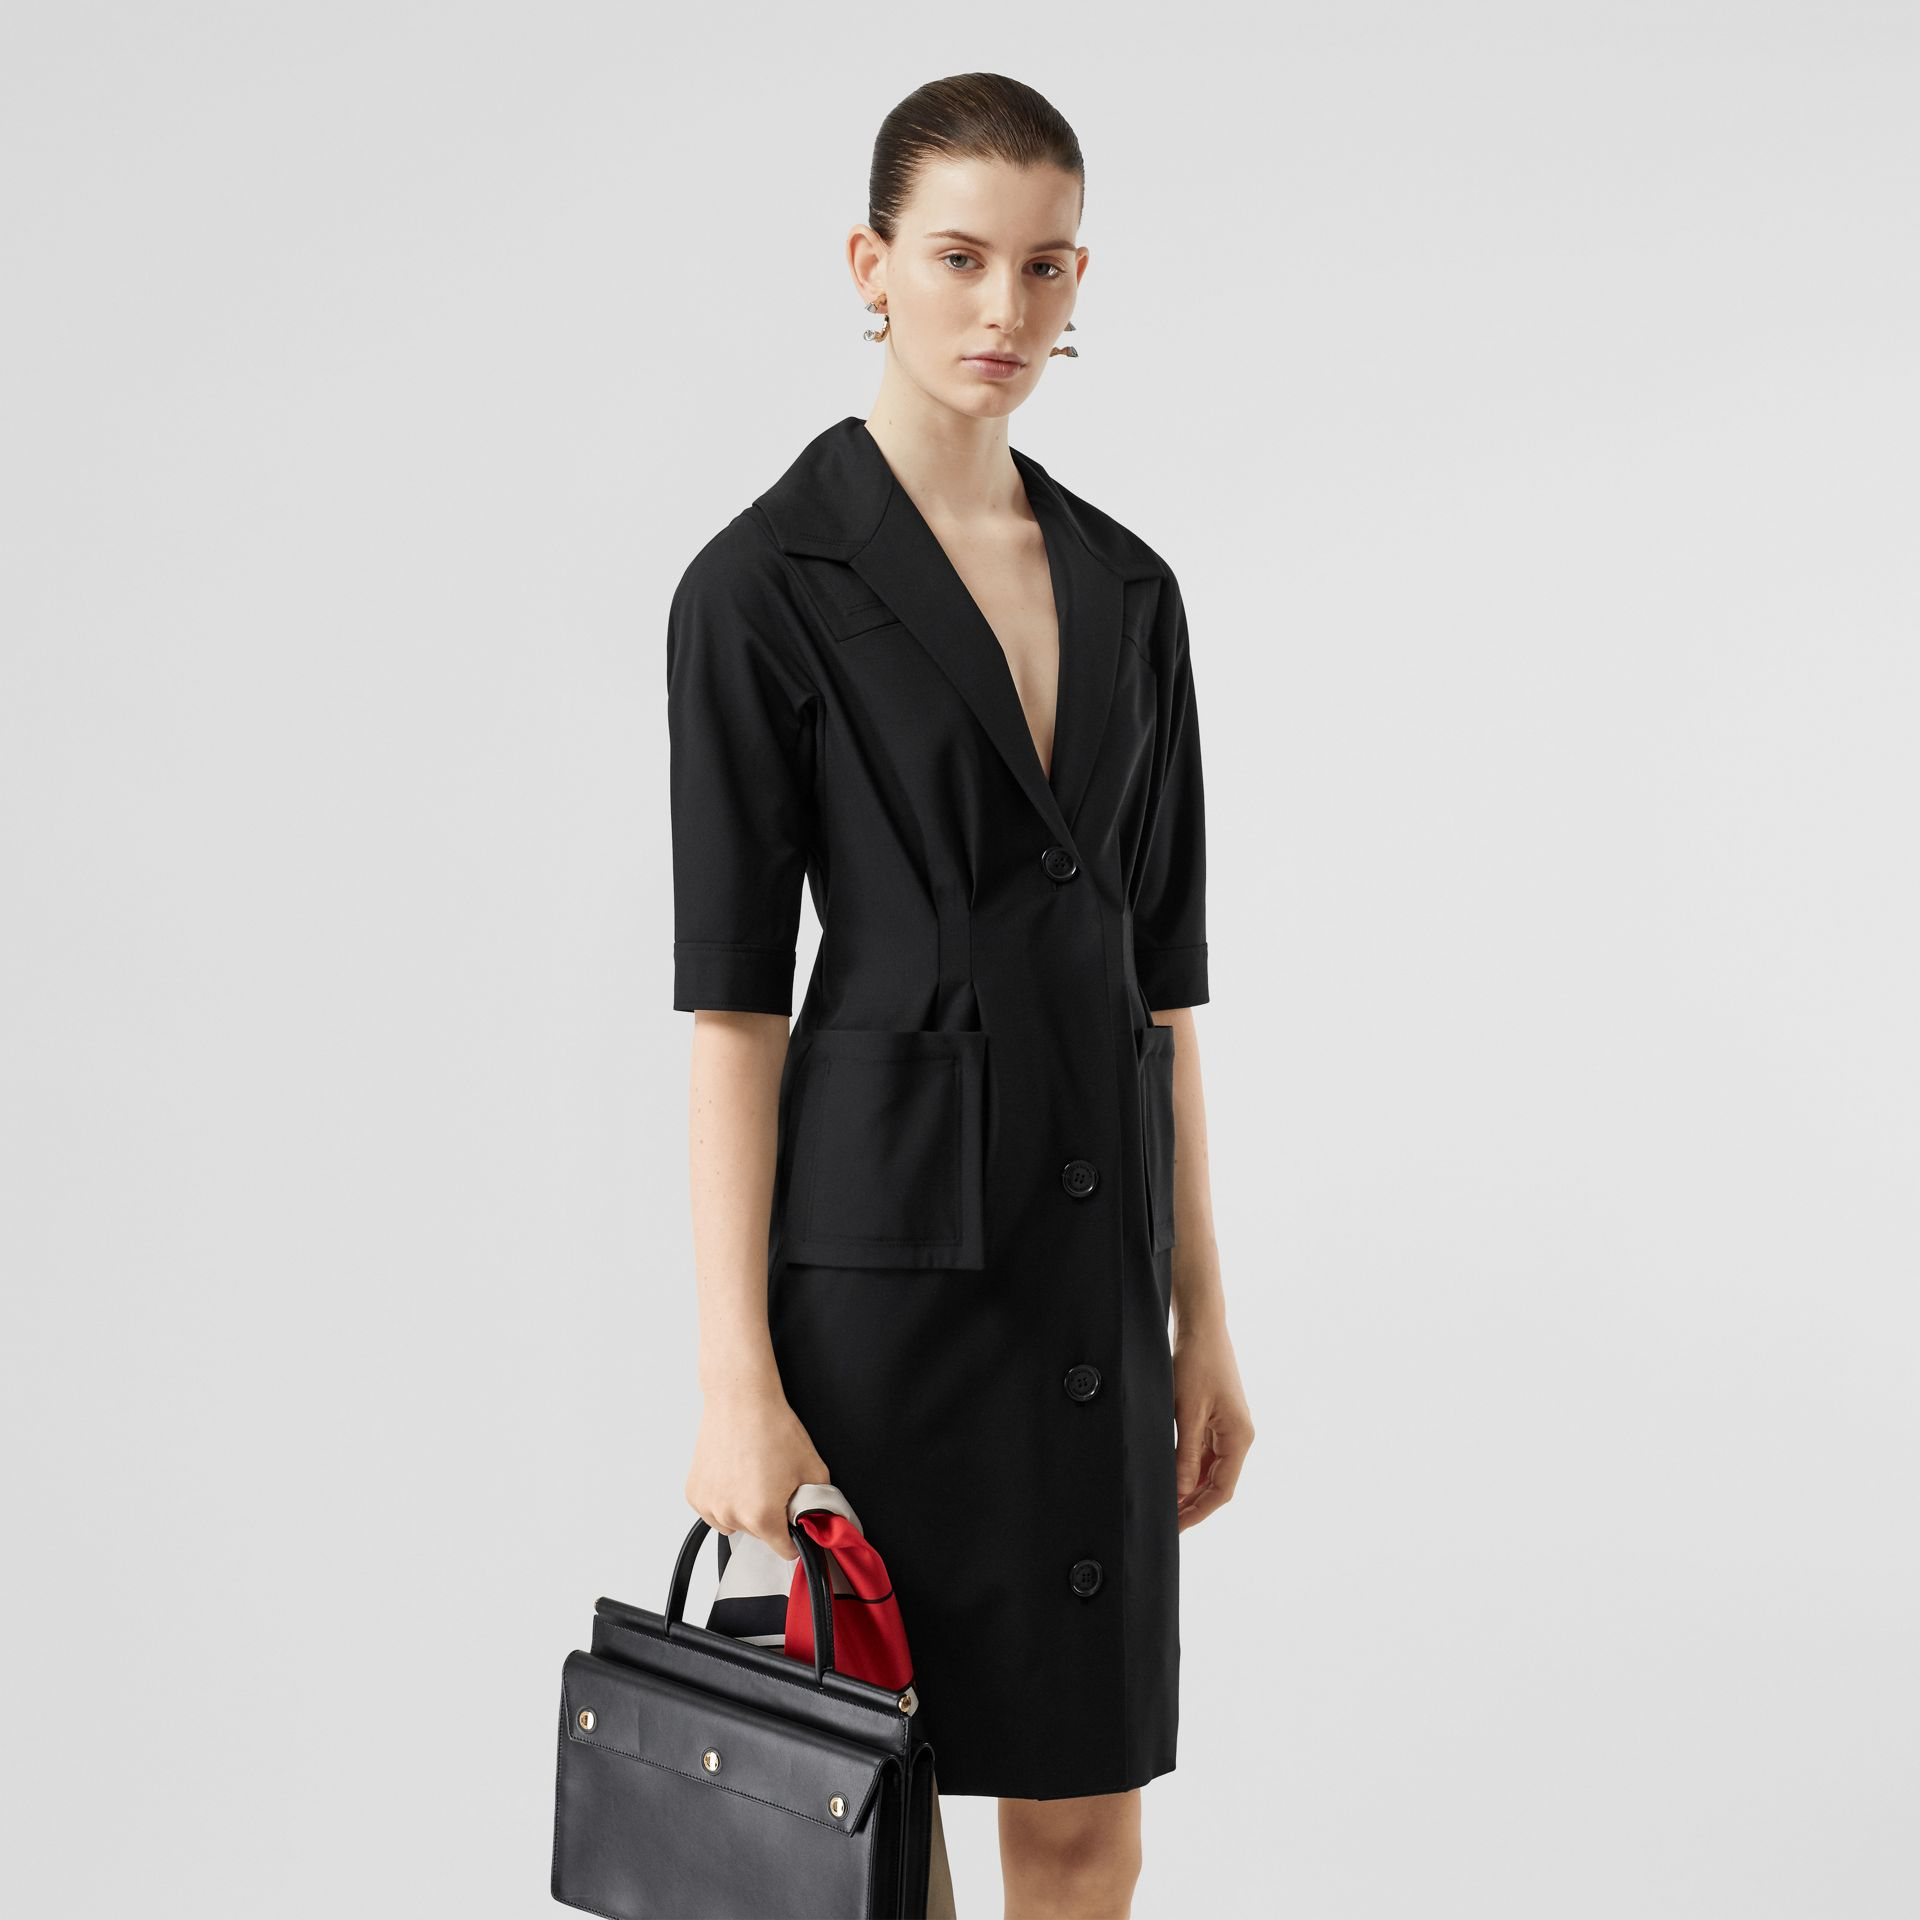 Short-sleeve Stretch Wool Dress in Black - Women | Burberry Hong Kong S.A.R - gallery image 4